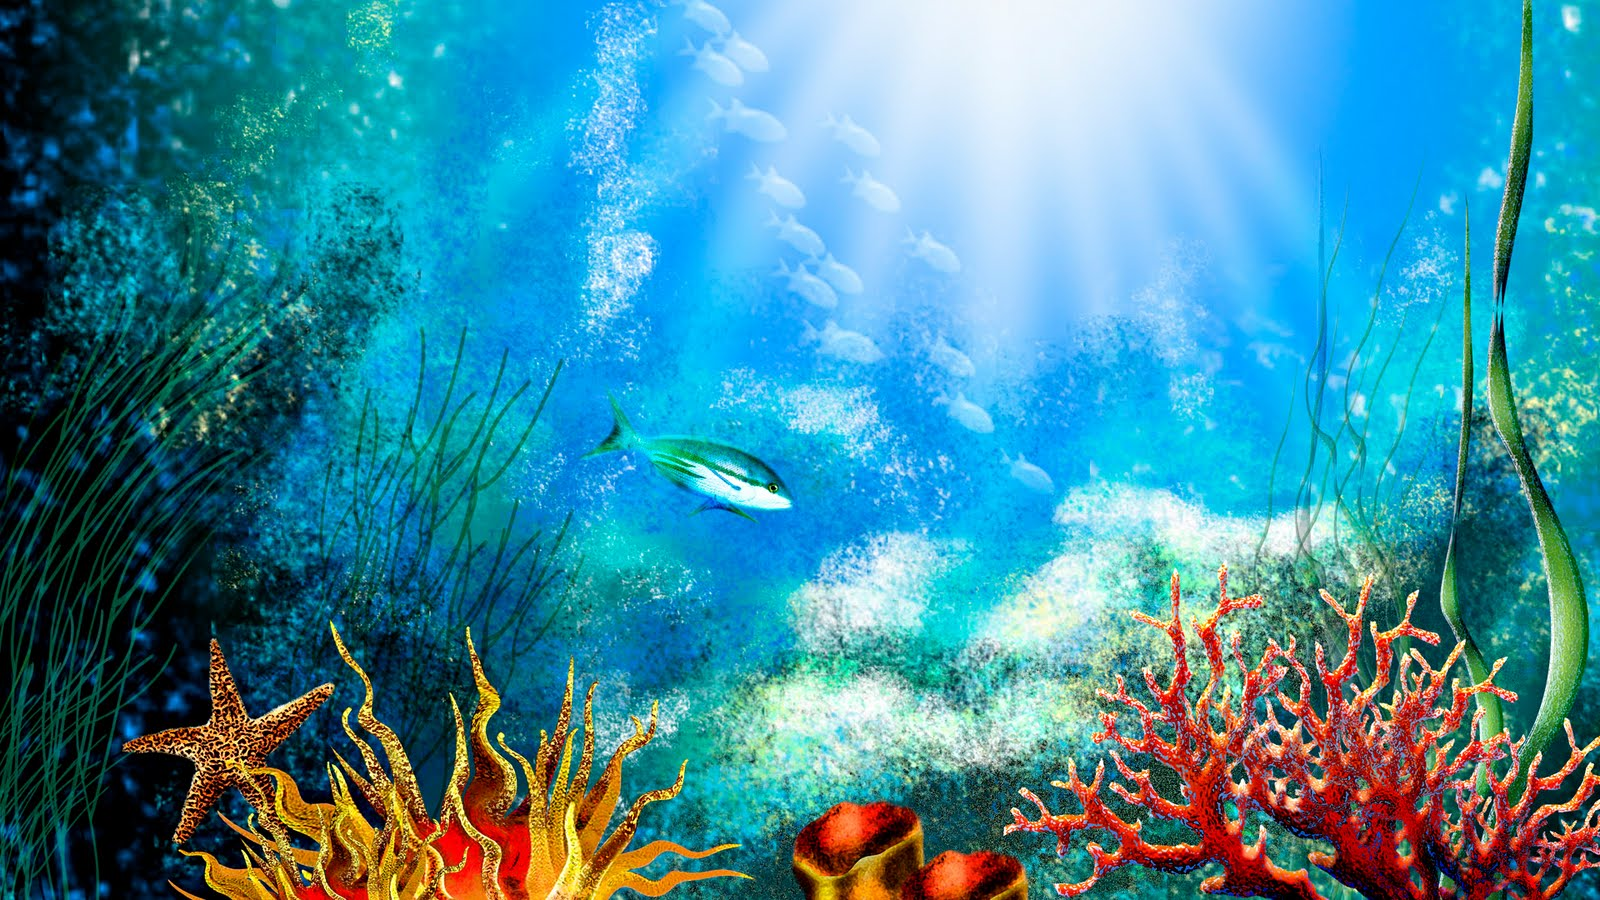 Free 3d wallpapers download aquarium hd wallpaper for Wallpapers hd gratis